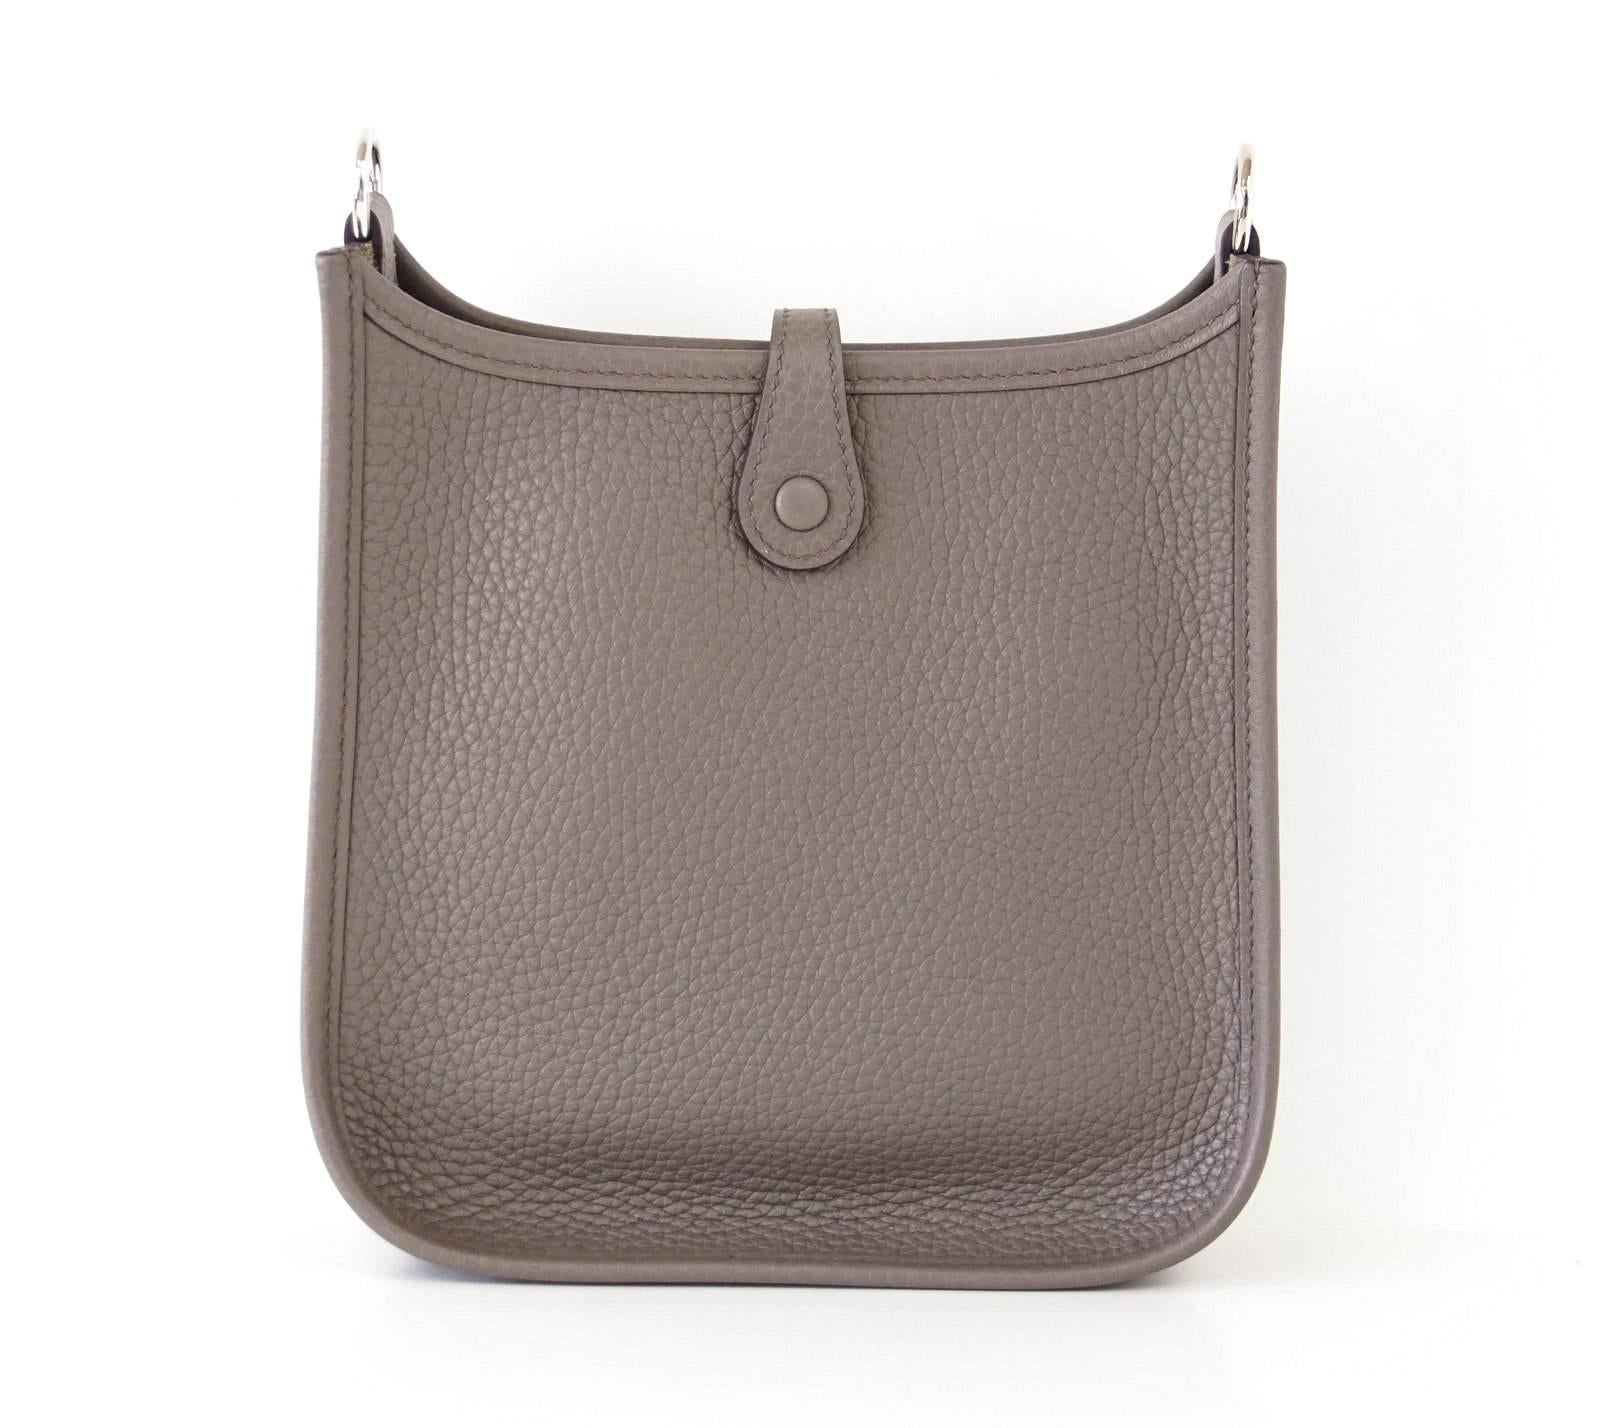 HERMES Bag Evelyne TPM Mini Etain Clemence Cuivre Strap Sold Out Colour at  1stdibs 42301ac5f436f